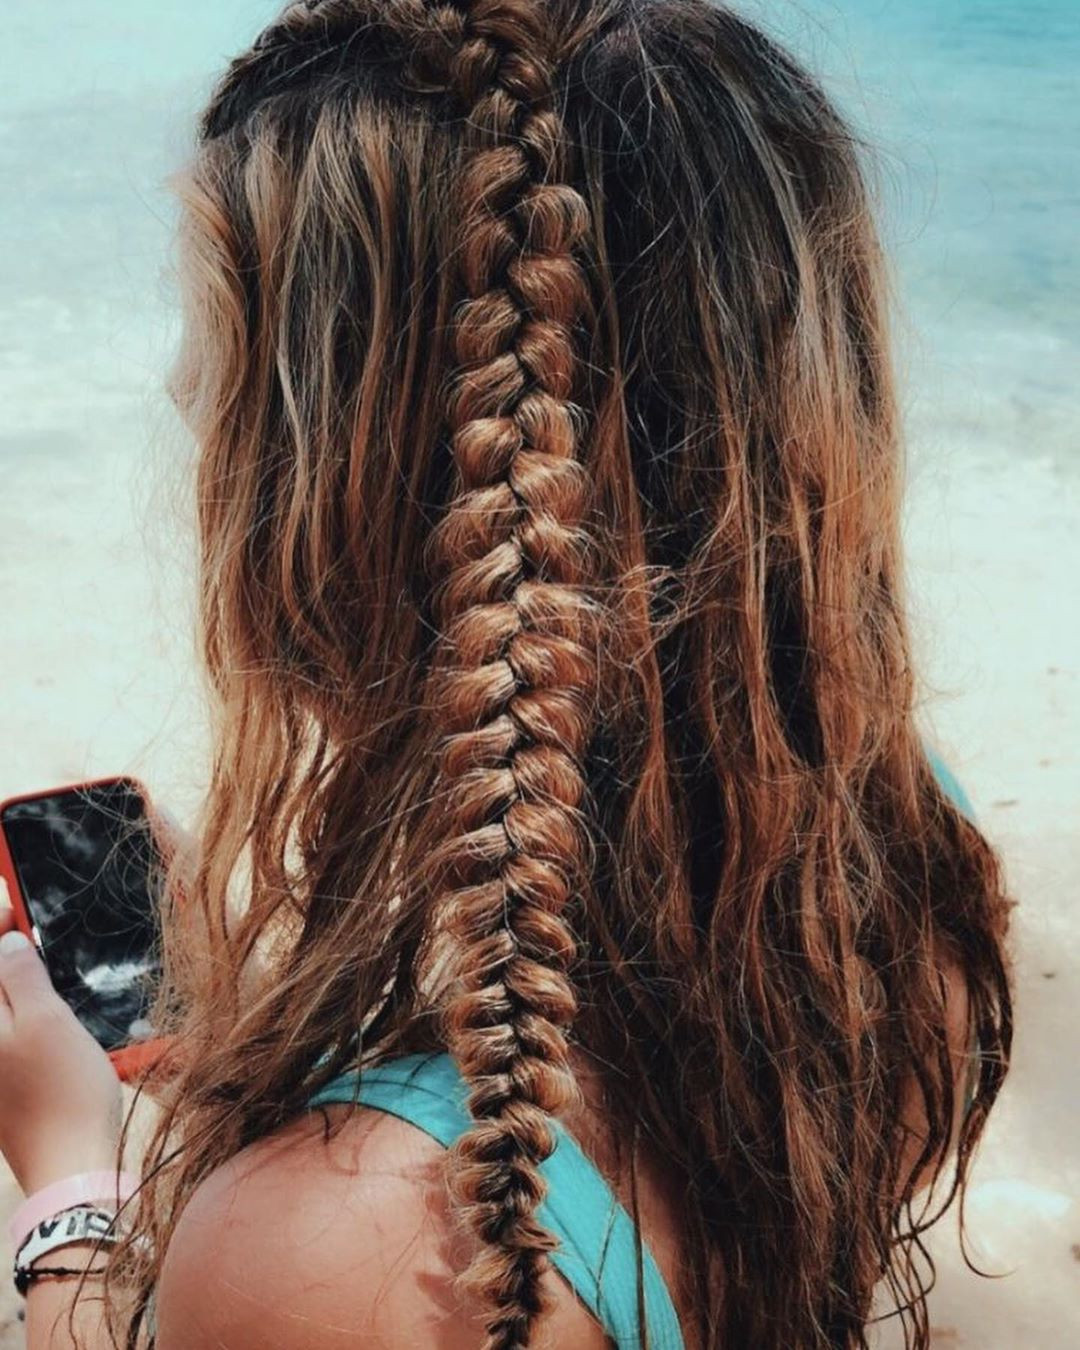 45 Best VSCO Hairstyles You'll Want To Copy,